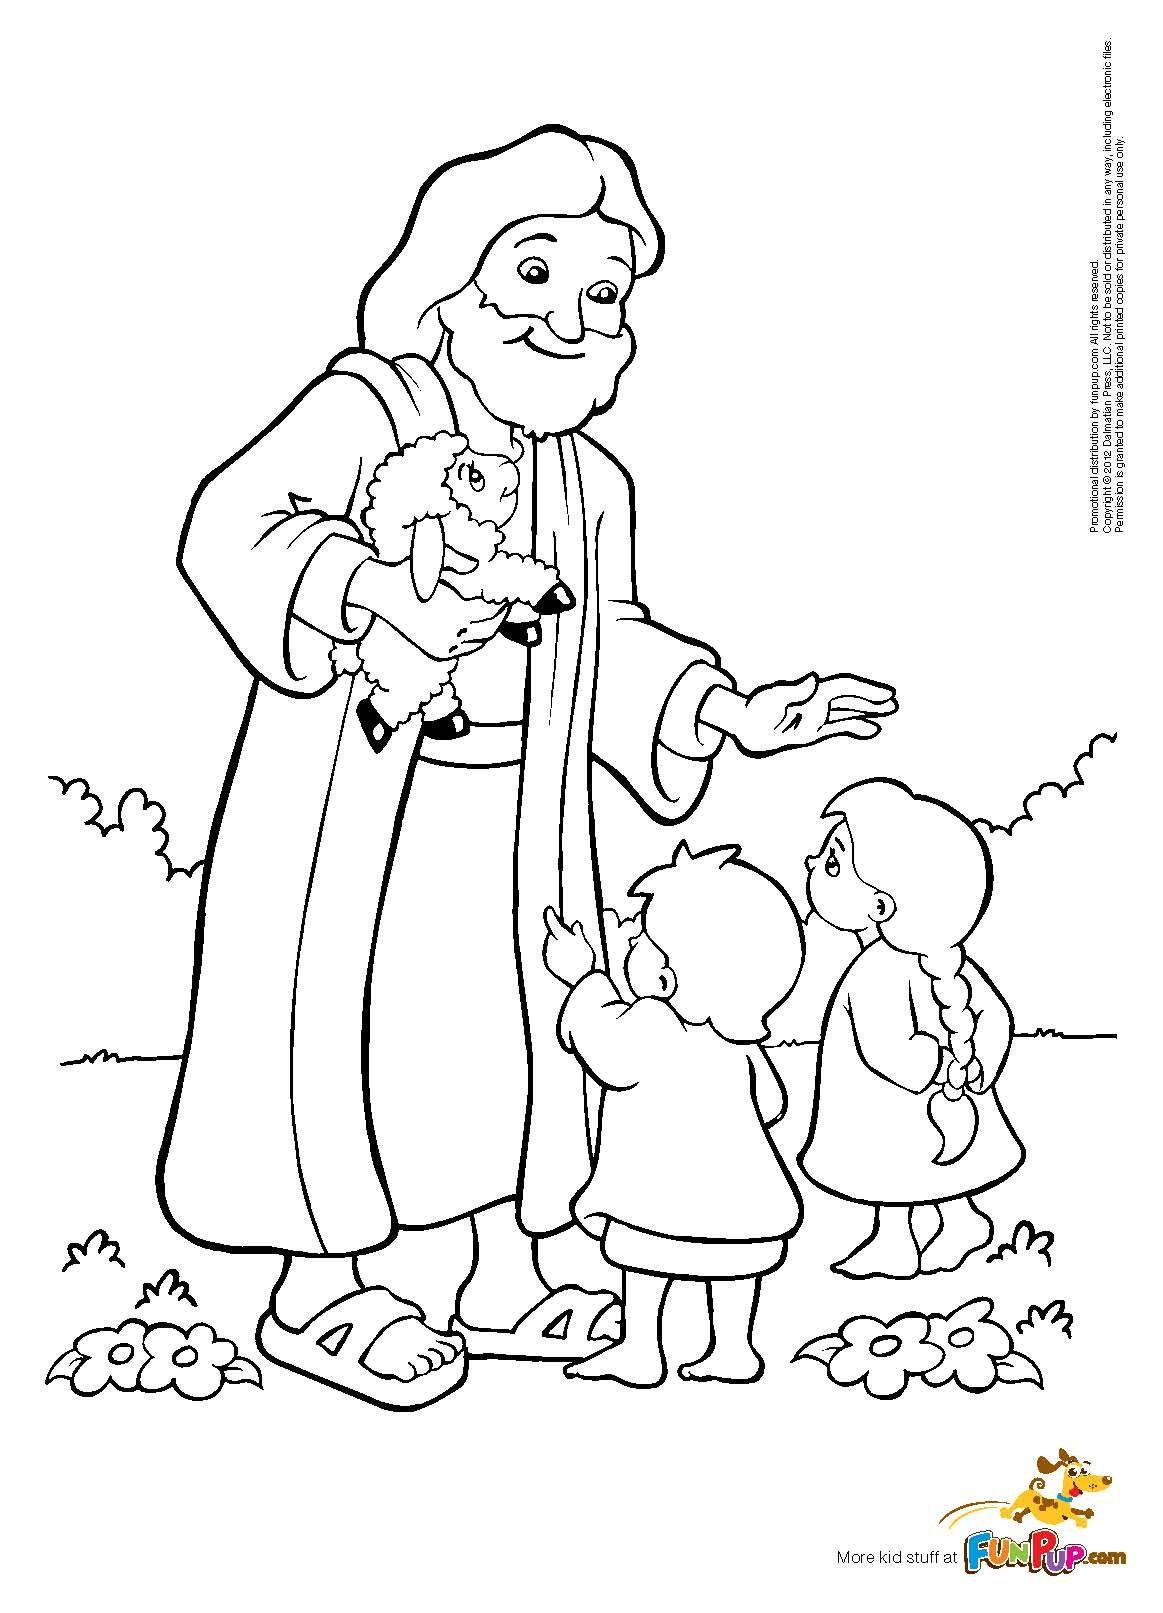 Printable coloring pages religious items - Find This Pin And More On Religion Happy Birthday Jesus Coloring Pages Printable